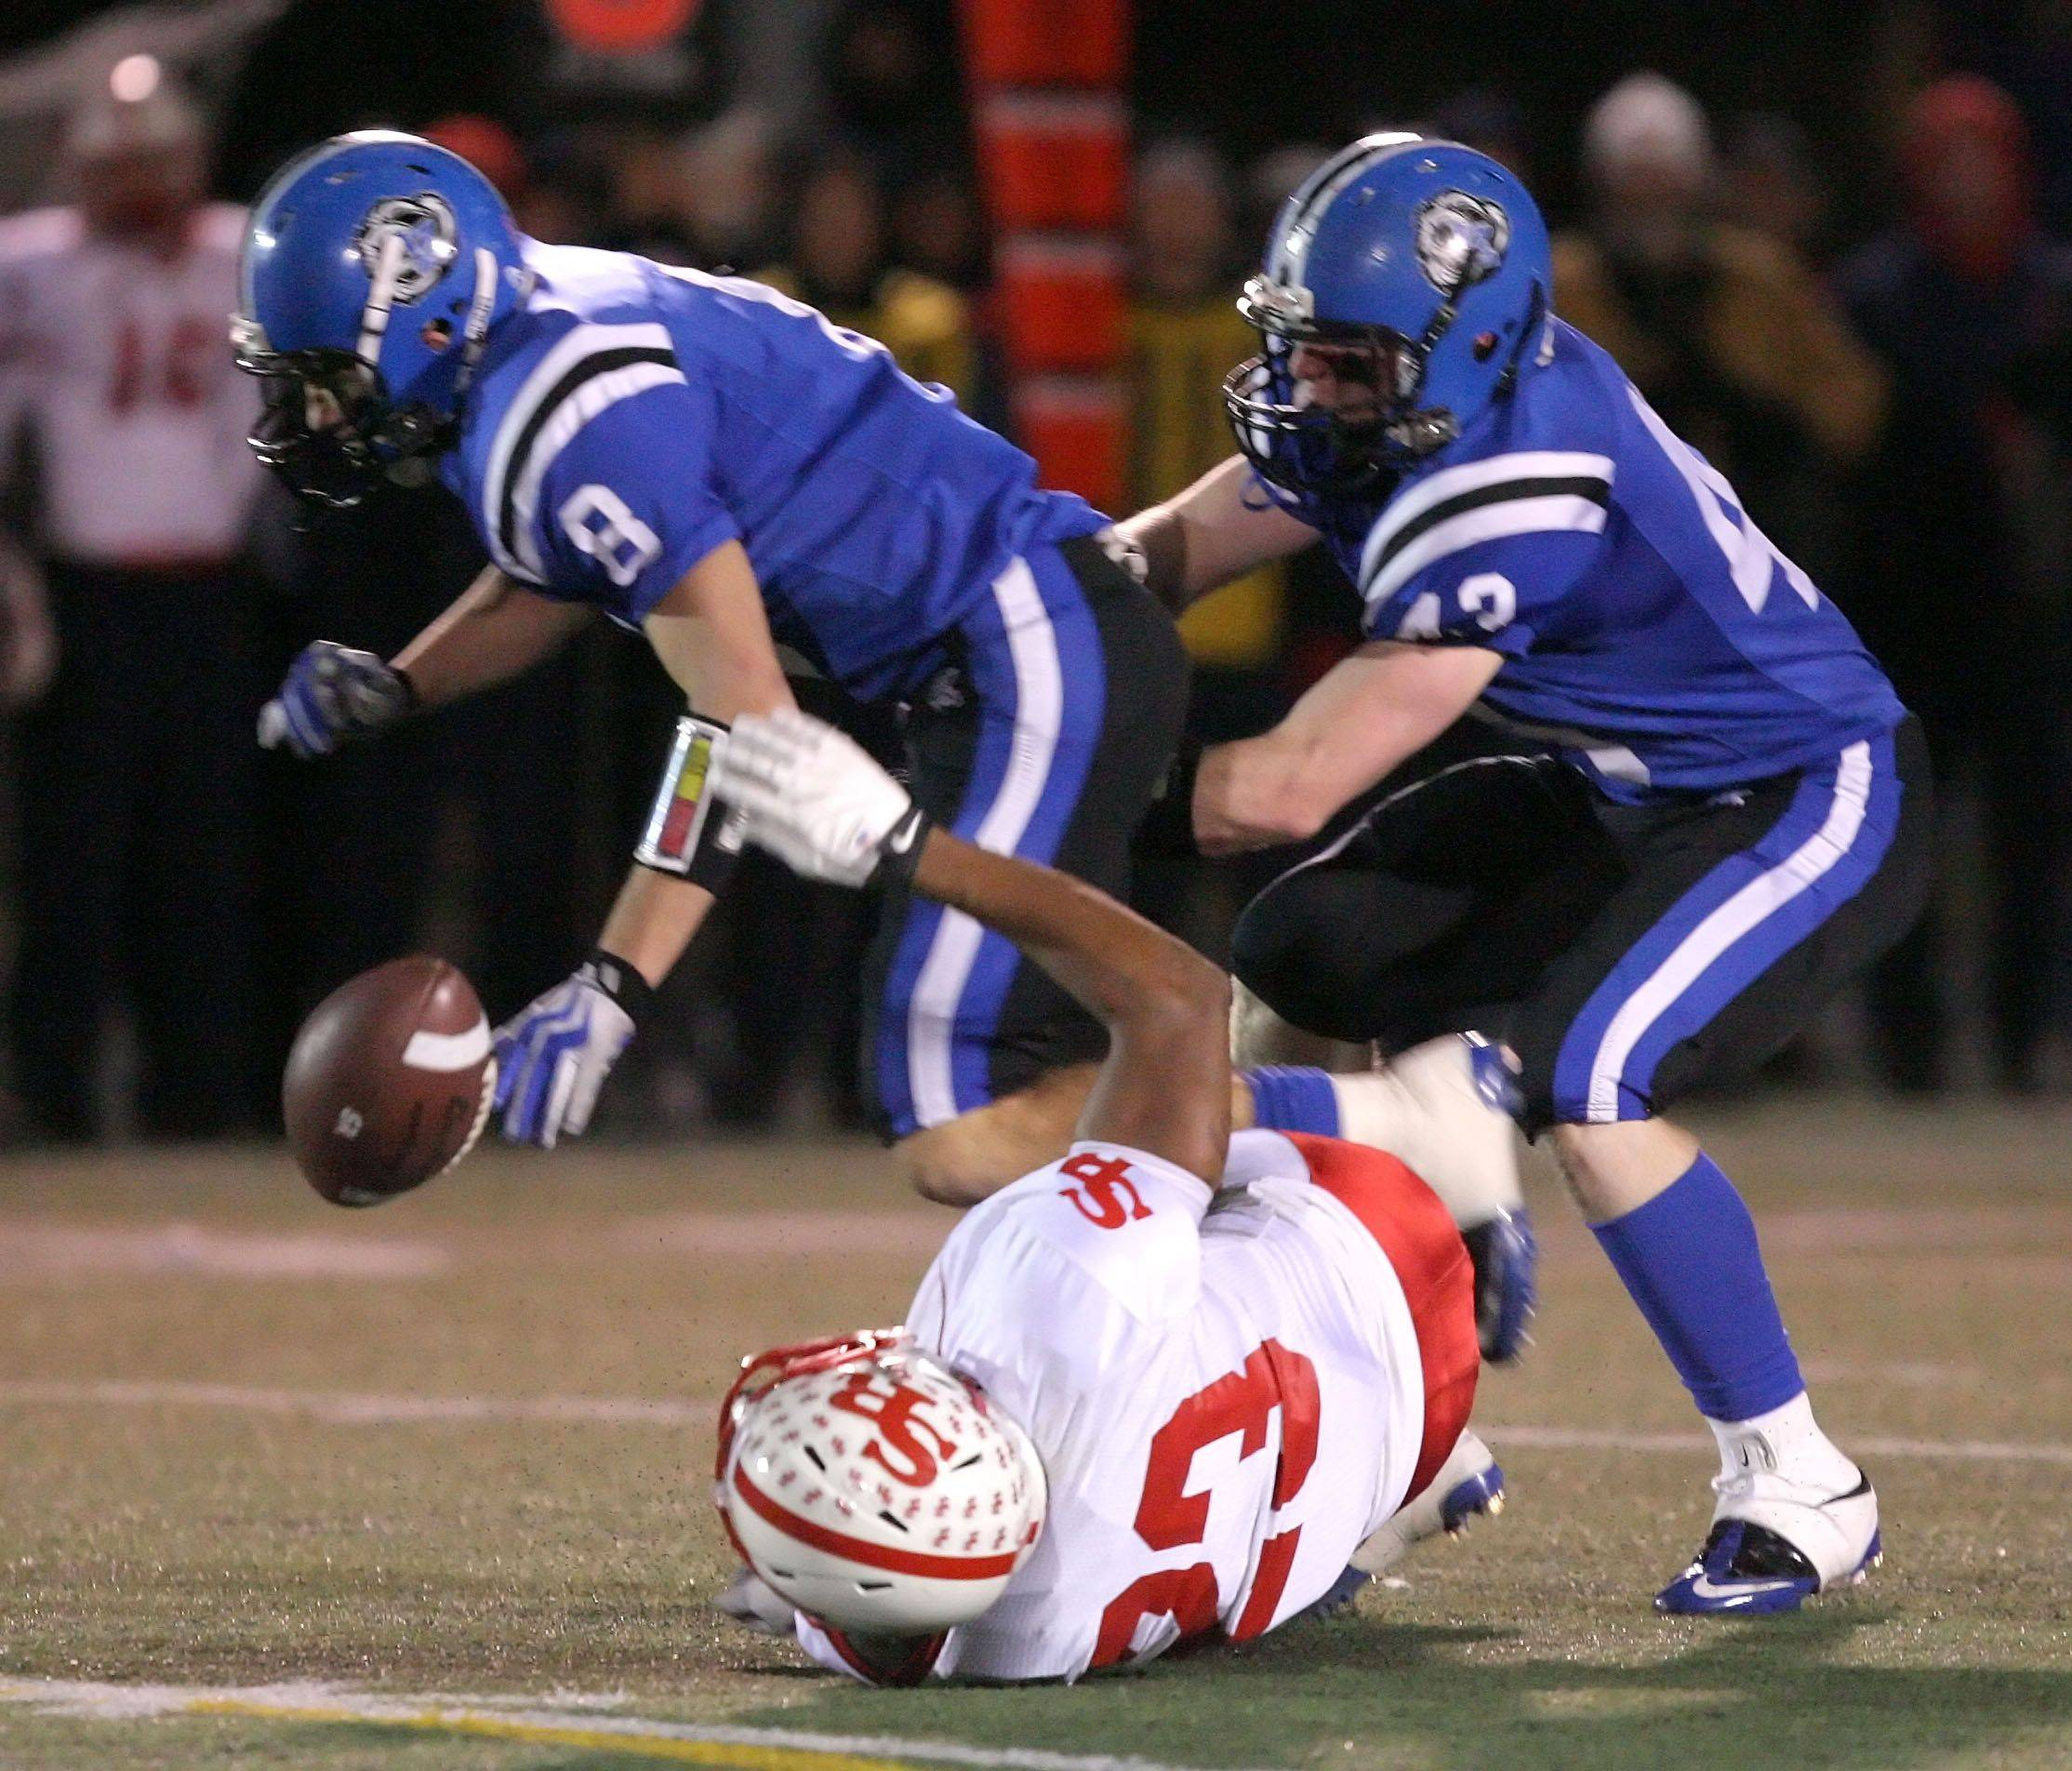 Lake Zurich'sChris Rantis and Taylor Coleman break up a pass to St. Rita's Mitch Saffold during the IHSA Class 7A football semi final game Saturday night at Lake Zurich High School.